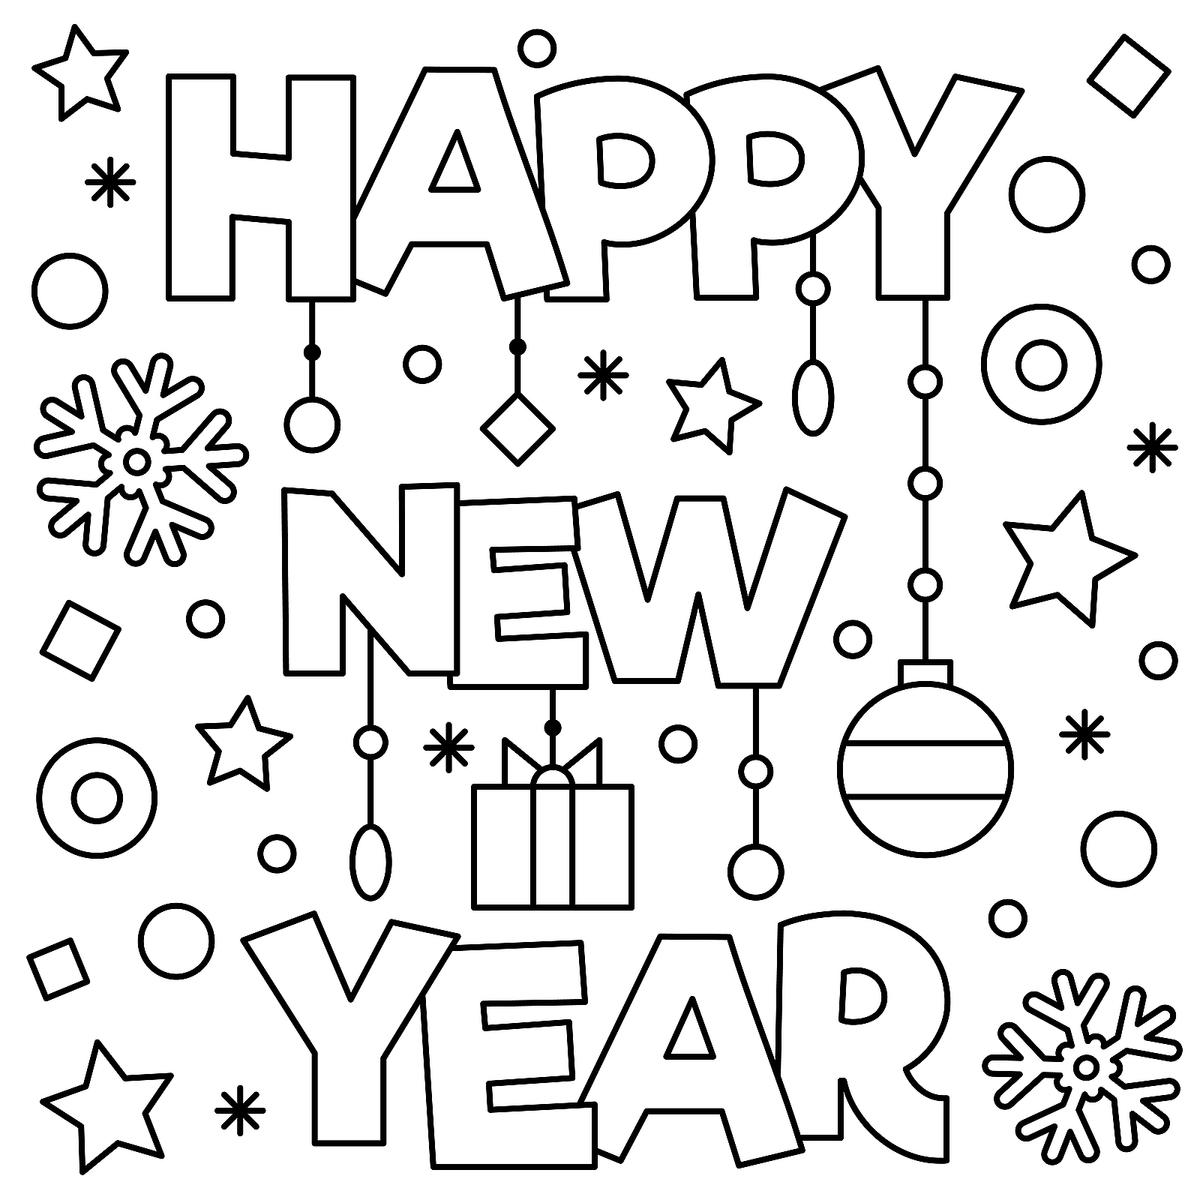 New Year Amp January Coloring Pages Printable Fun To Help Kids Welcome